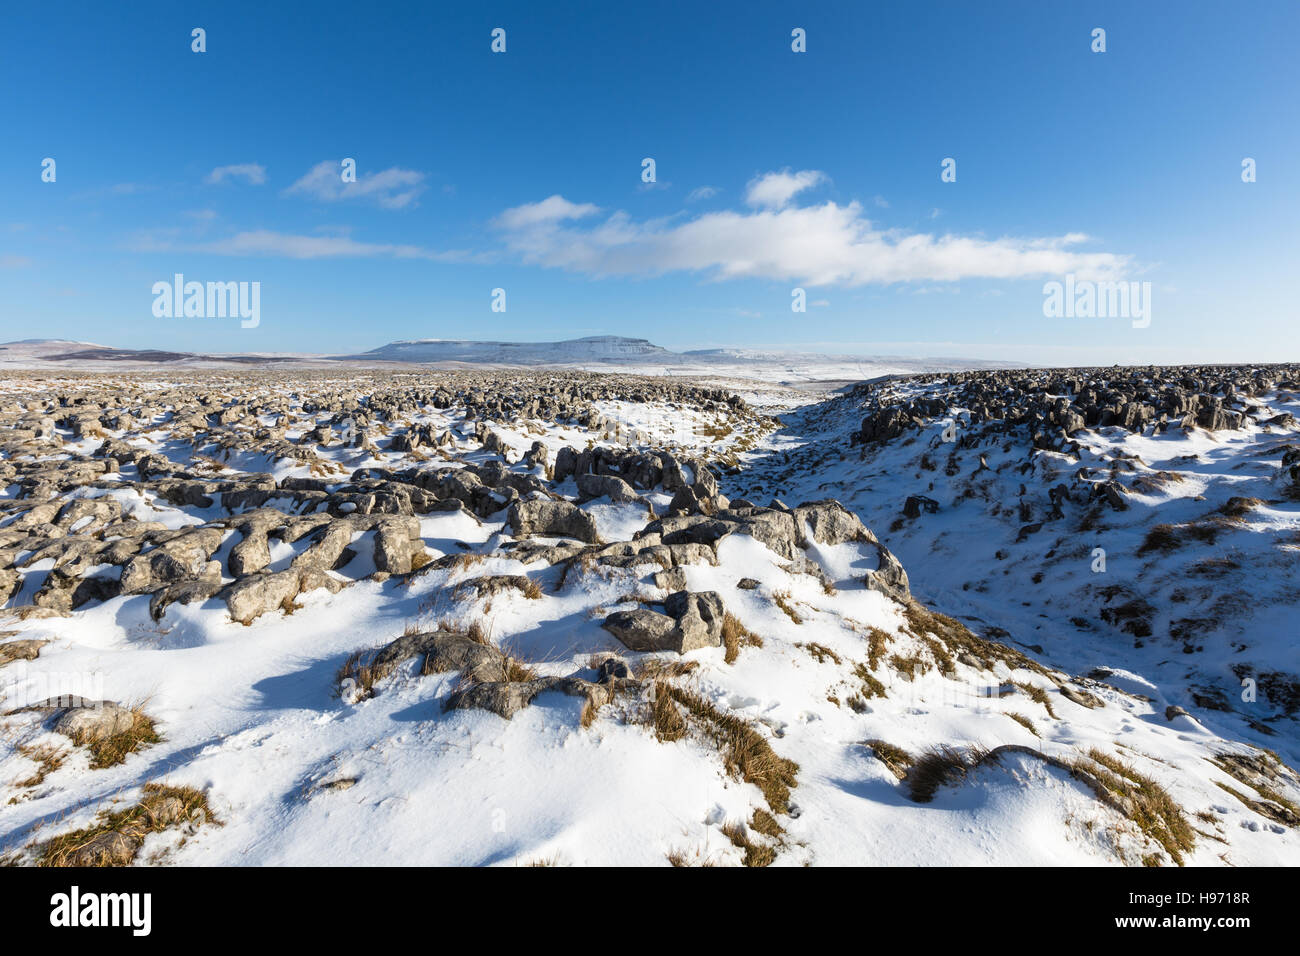 View down the Yorkshire Three Peaks footpath at Sulber Nick towards Pen-y-ghent, Yorkshire Dales, England, UK - Stock Image